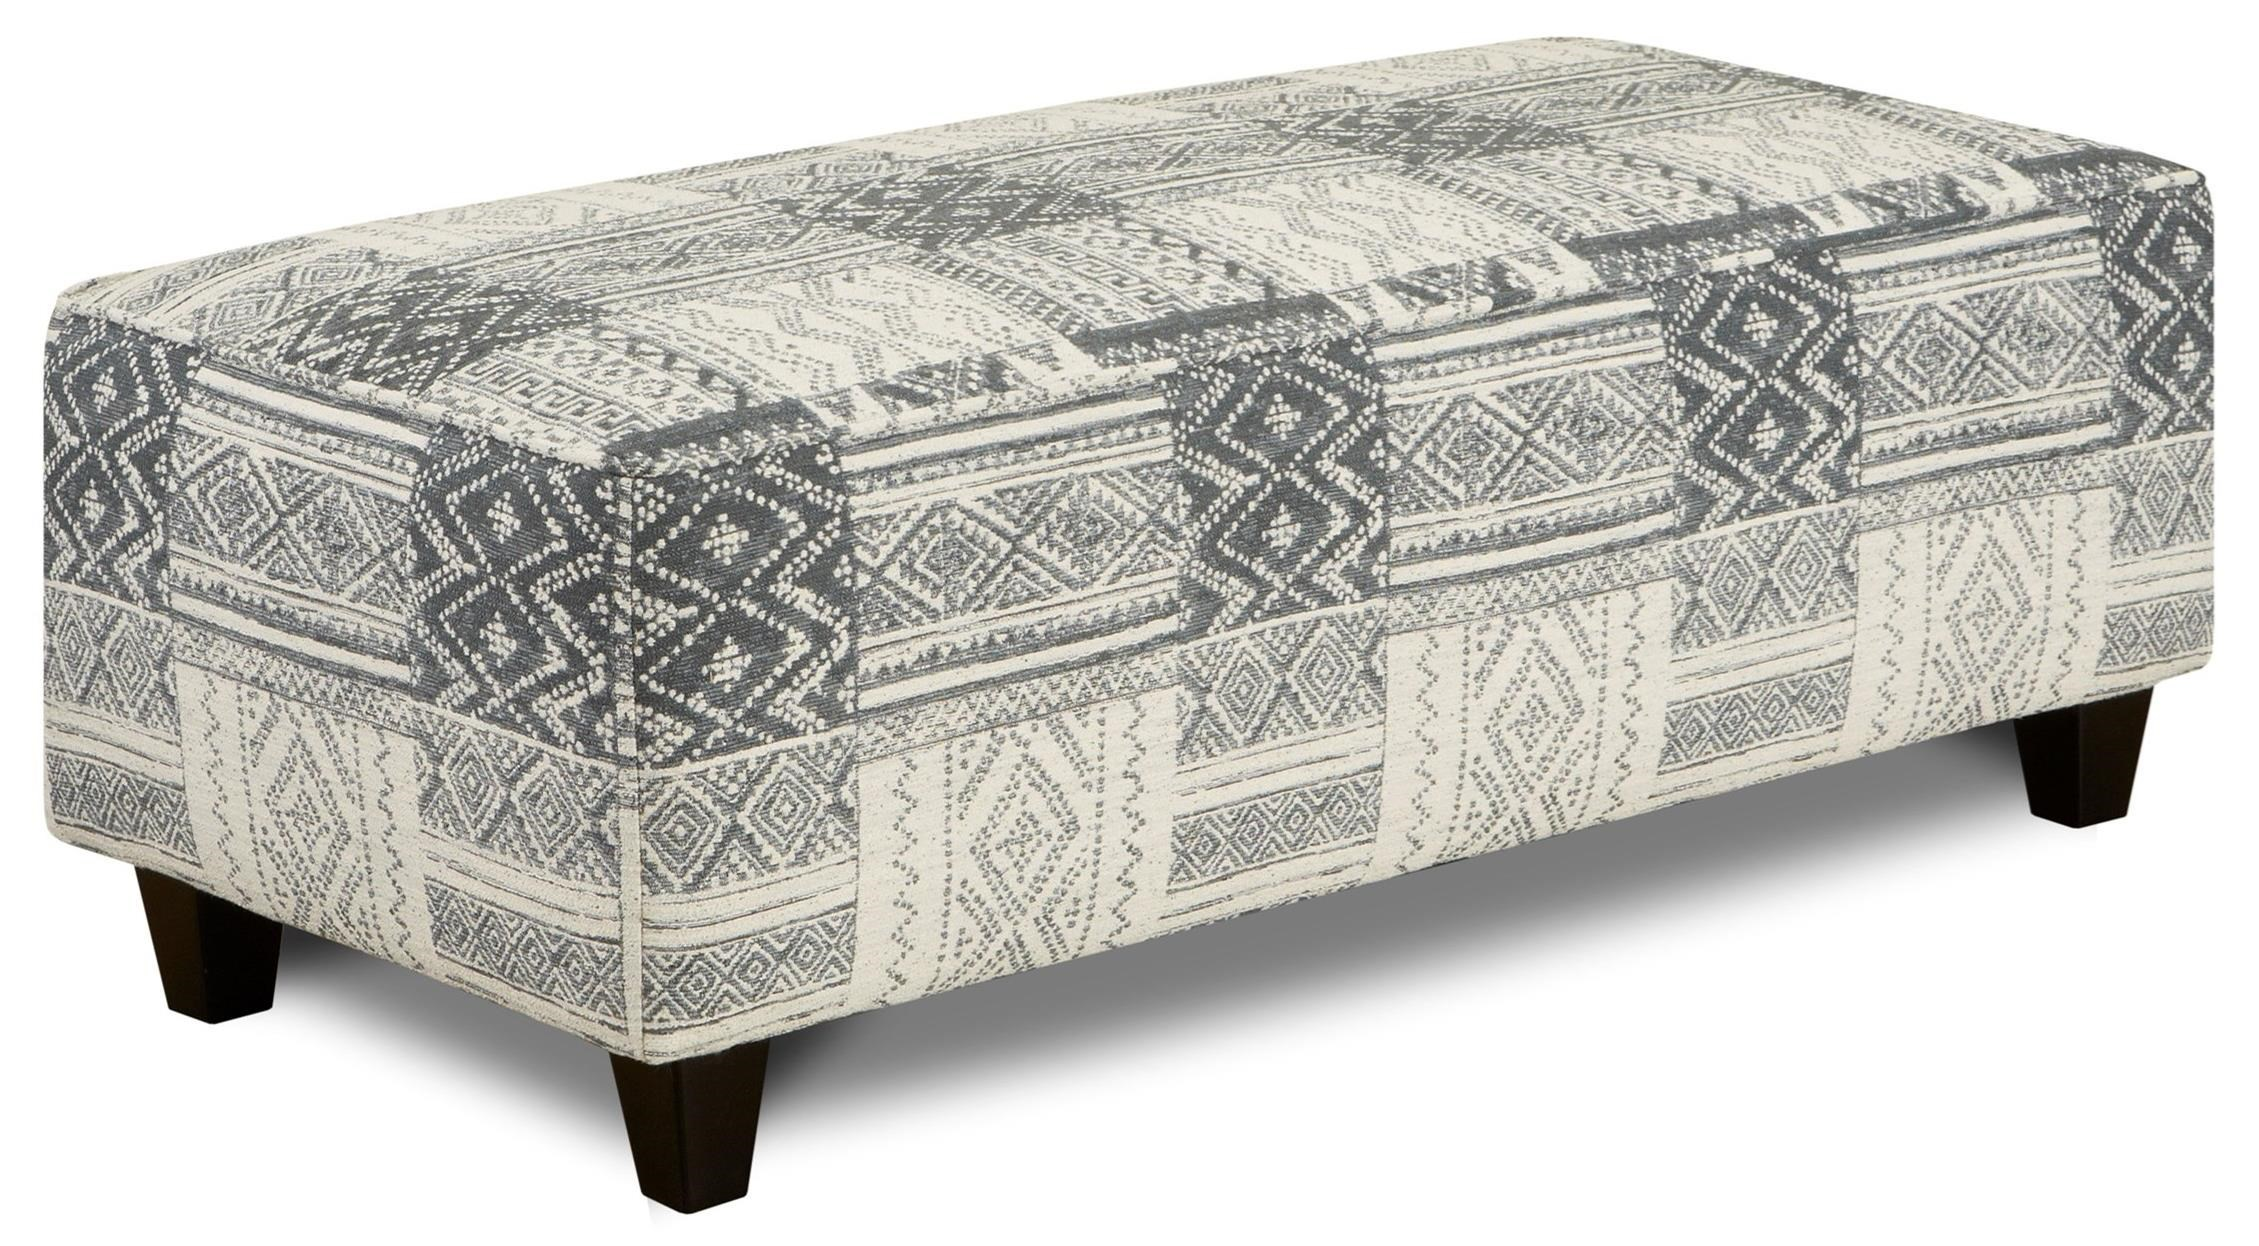 100 Ottoman by Fusion Furniture at Furniture Superstore - Rochester, MN